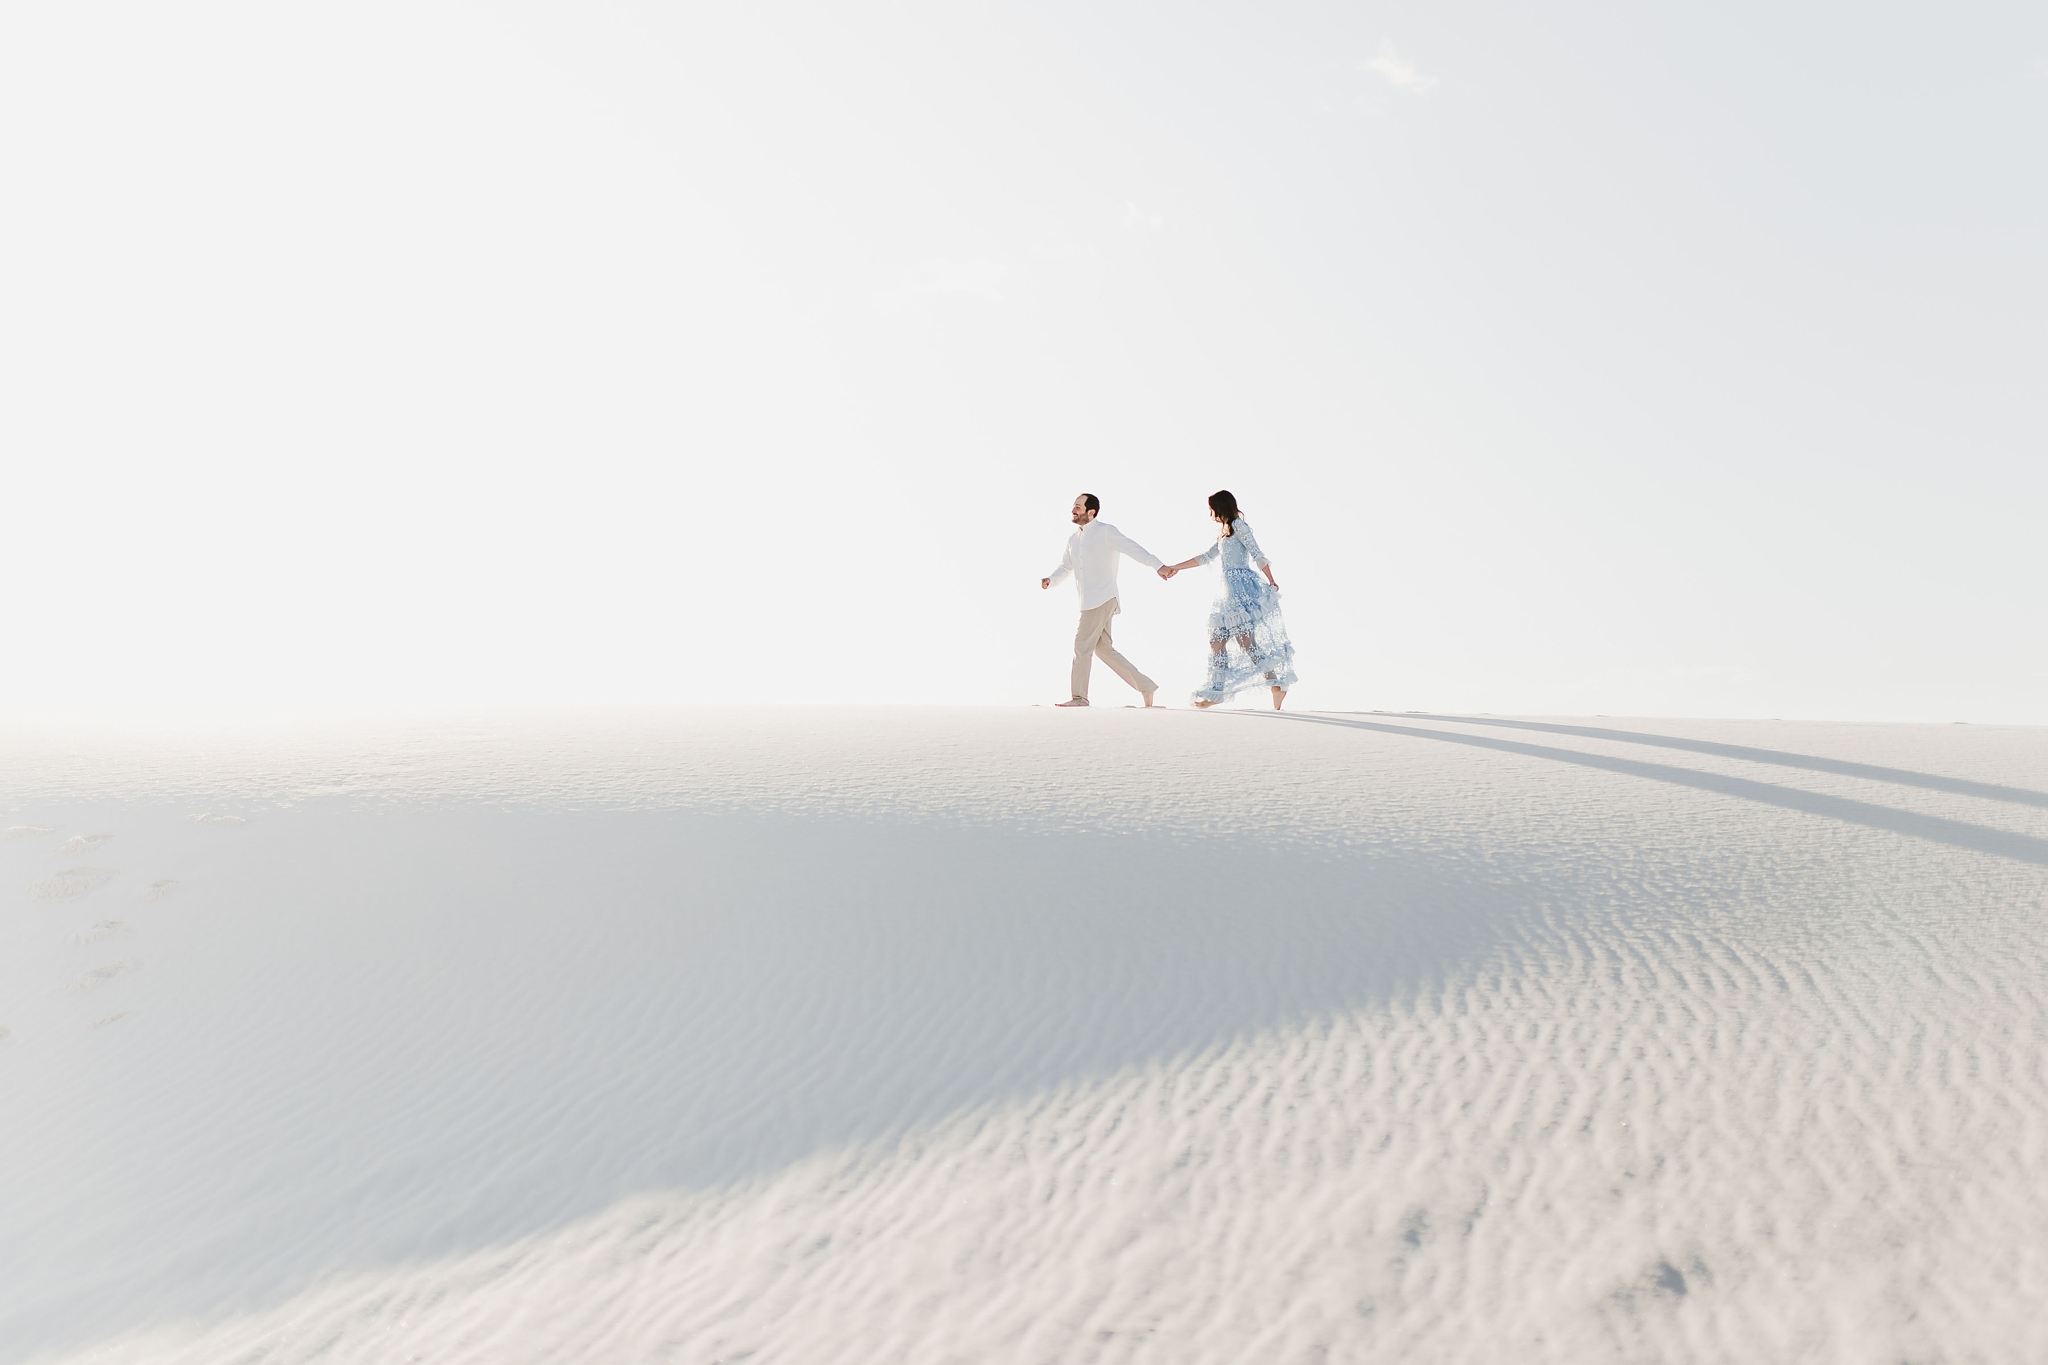 Alicia+lucia+photography+-+albuquerque+wedding+photographer+-+santa+fe+wedding+photography+-+new+mexico+wedding+photographer+-+new+mexico+wedding+-+new+mexico+engagement+-+white+sands+engagement+-+white+sands+national+monument_0019.jpg